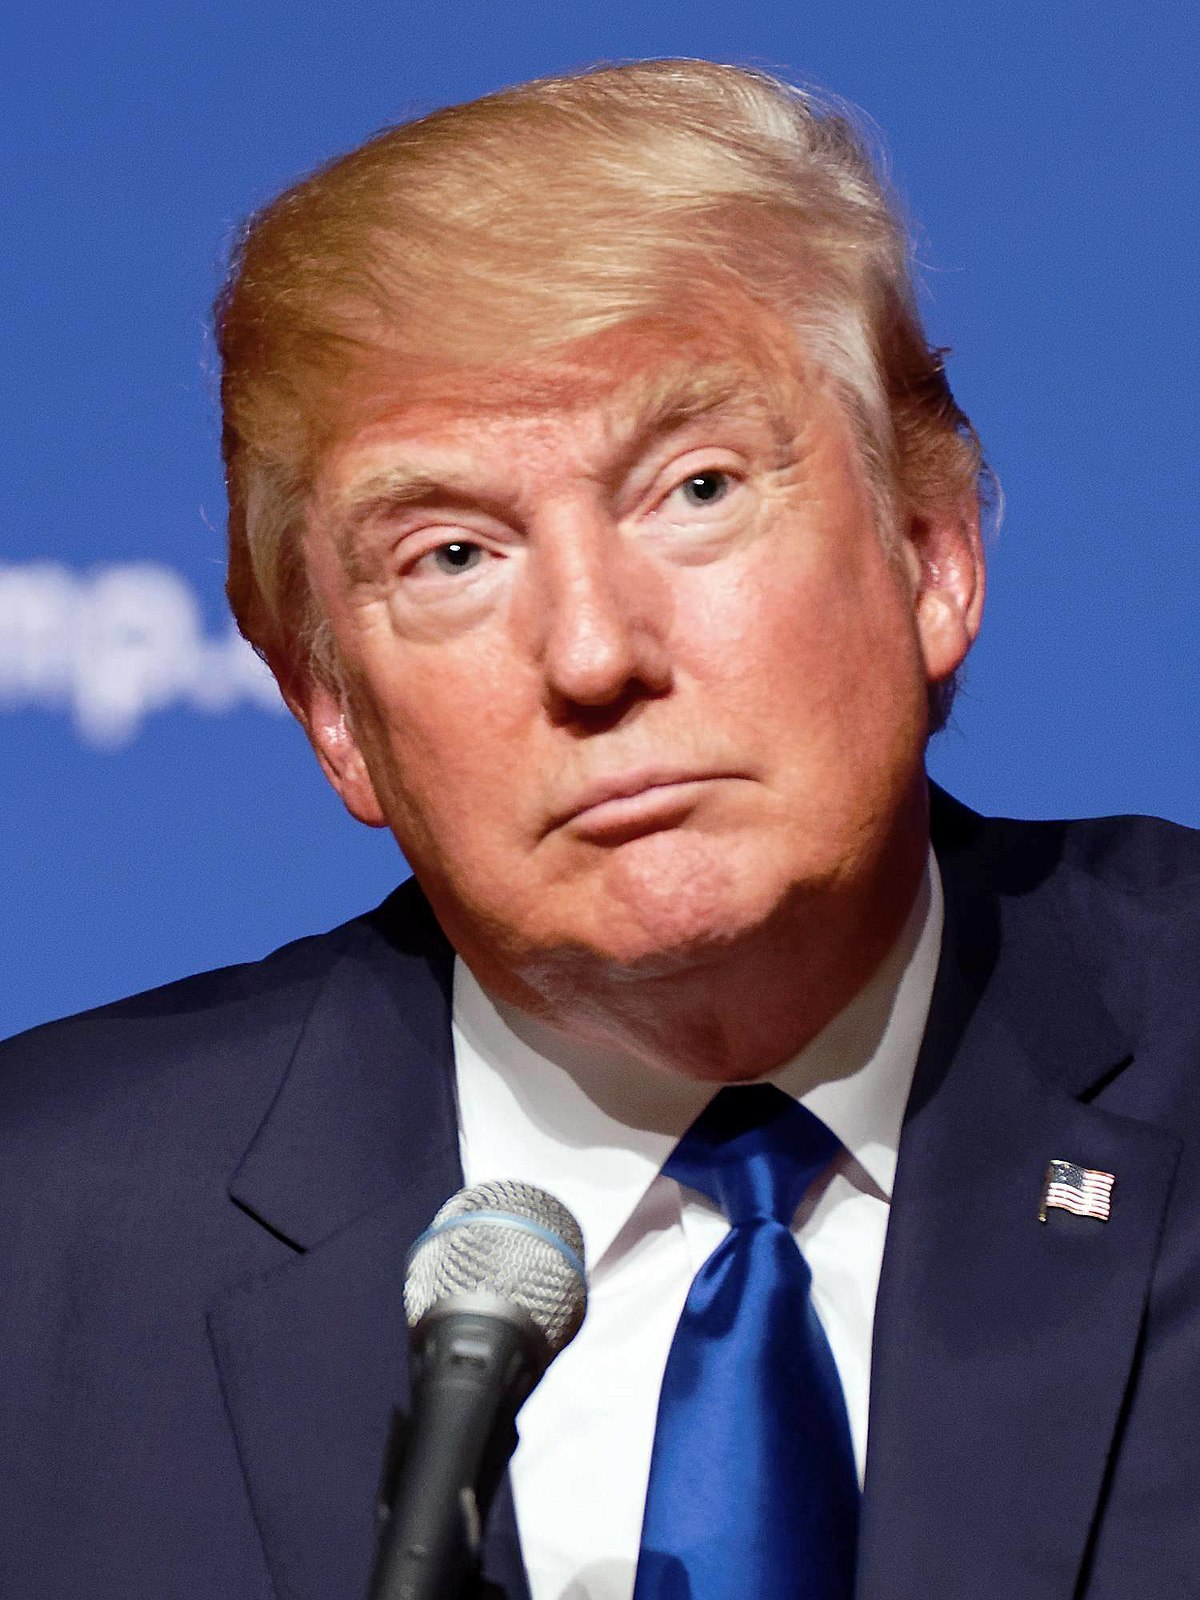 Portrait of Donald Trump during a campaign event on August 19, 2015